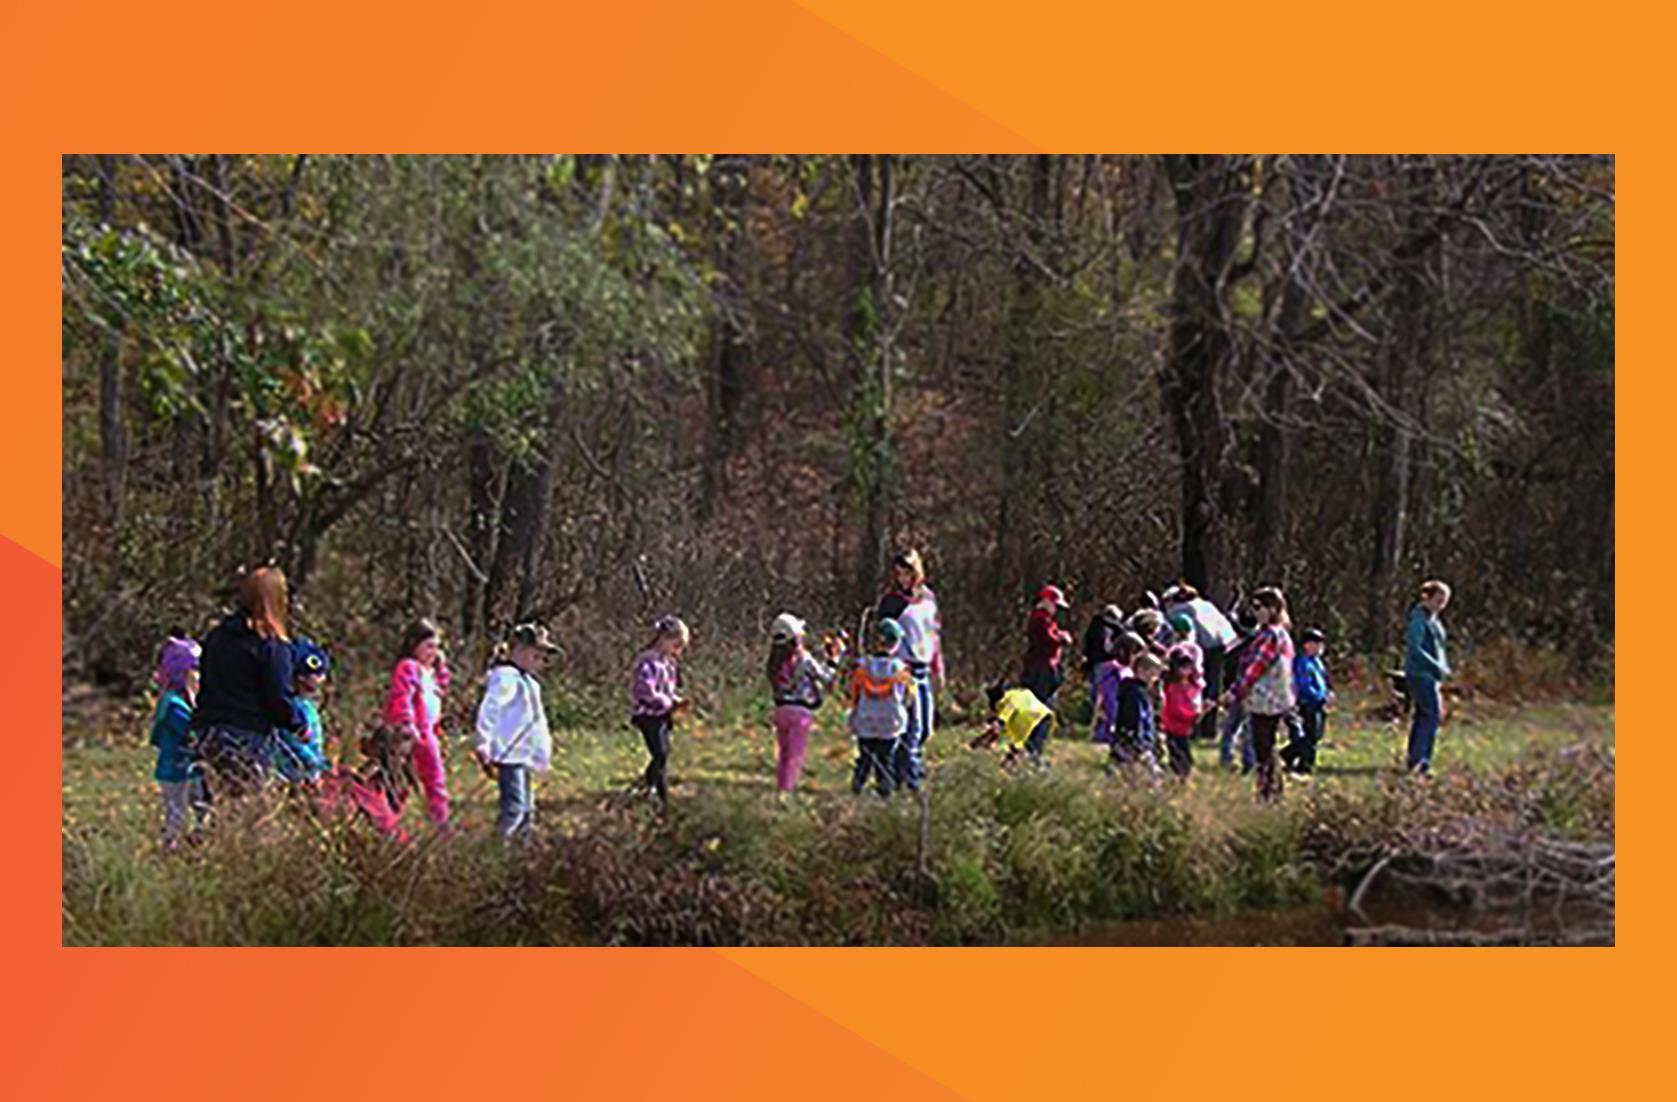 Chemours Washington Works team took 65 first graders to a local nature trail for a day of exploration and education